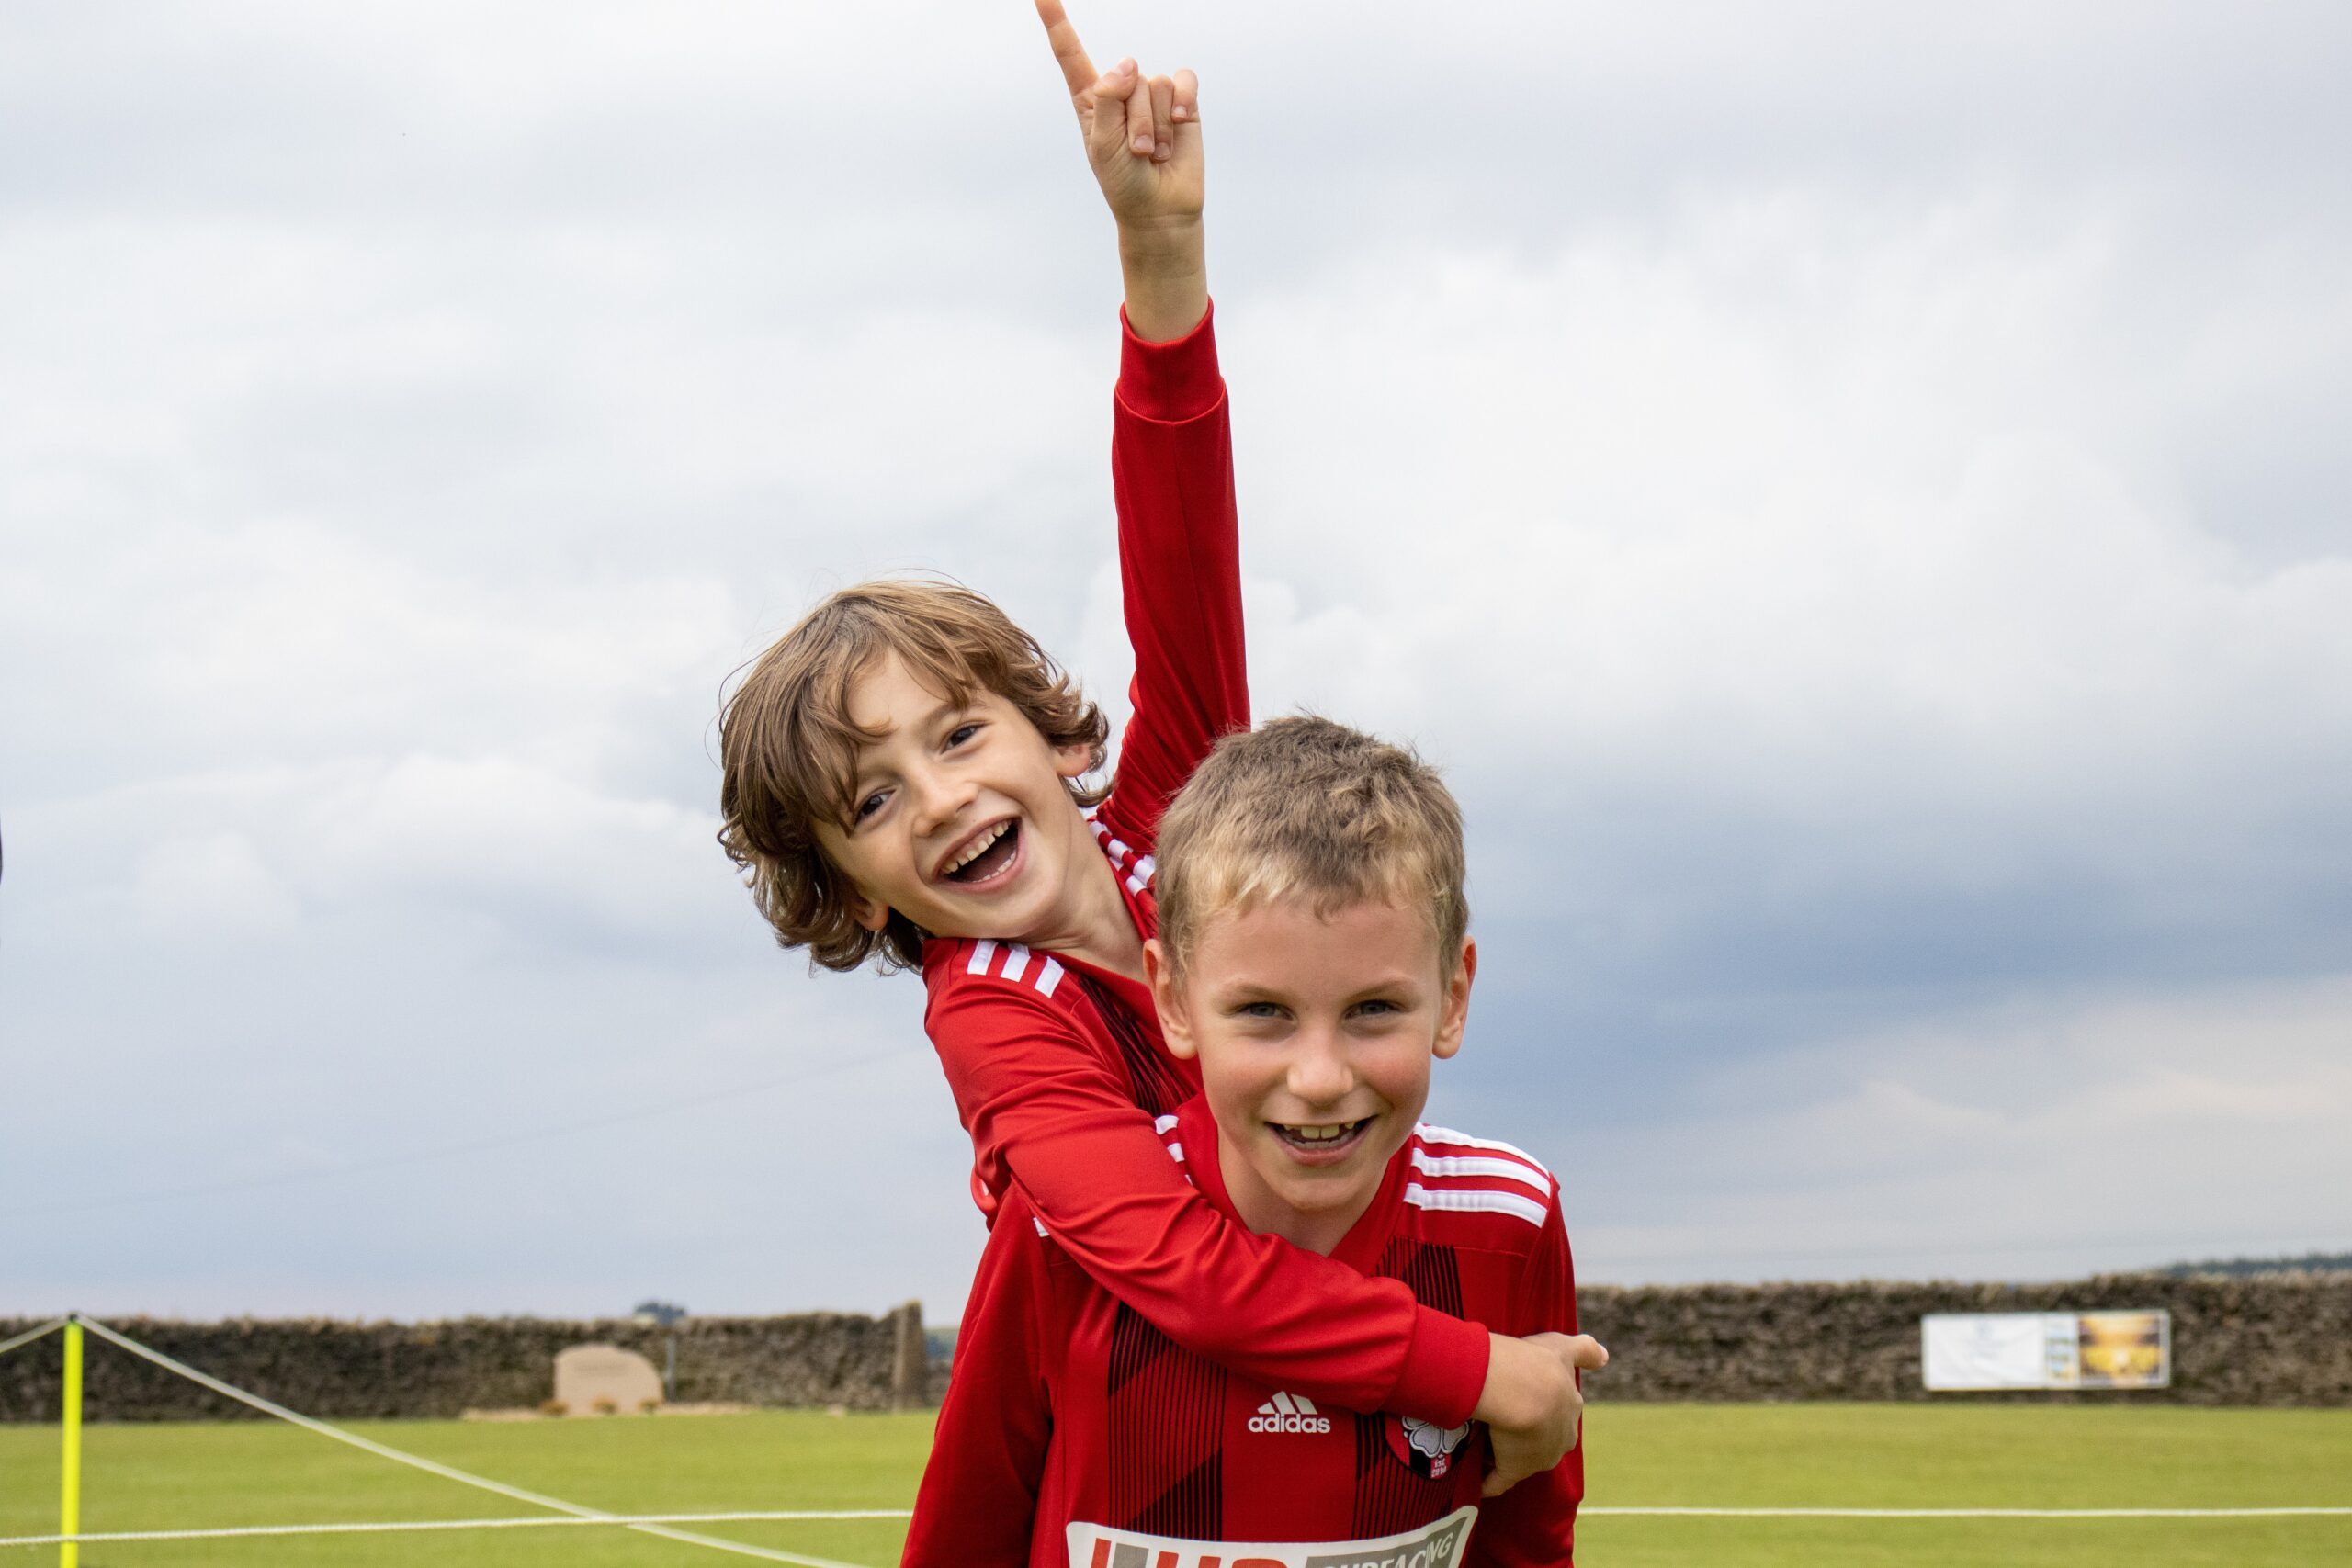 Photos from our U7's match against Garforth Rangers